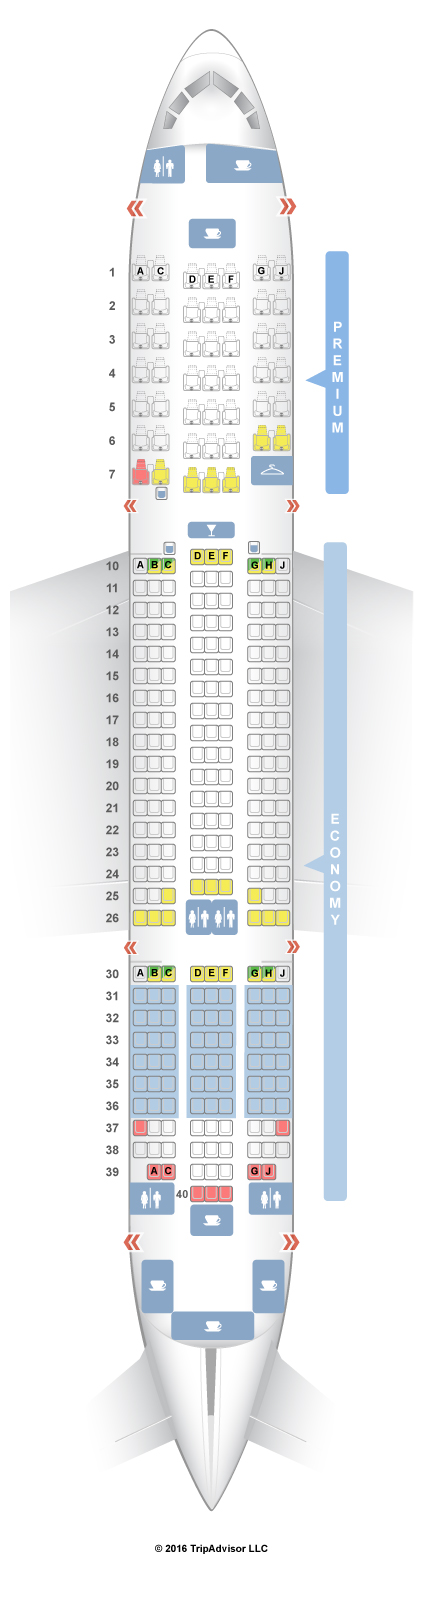 Norwegian 787 9 Dreamliner Seat Map Brokeasshome Com